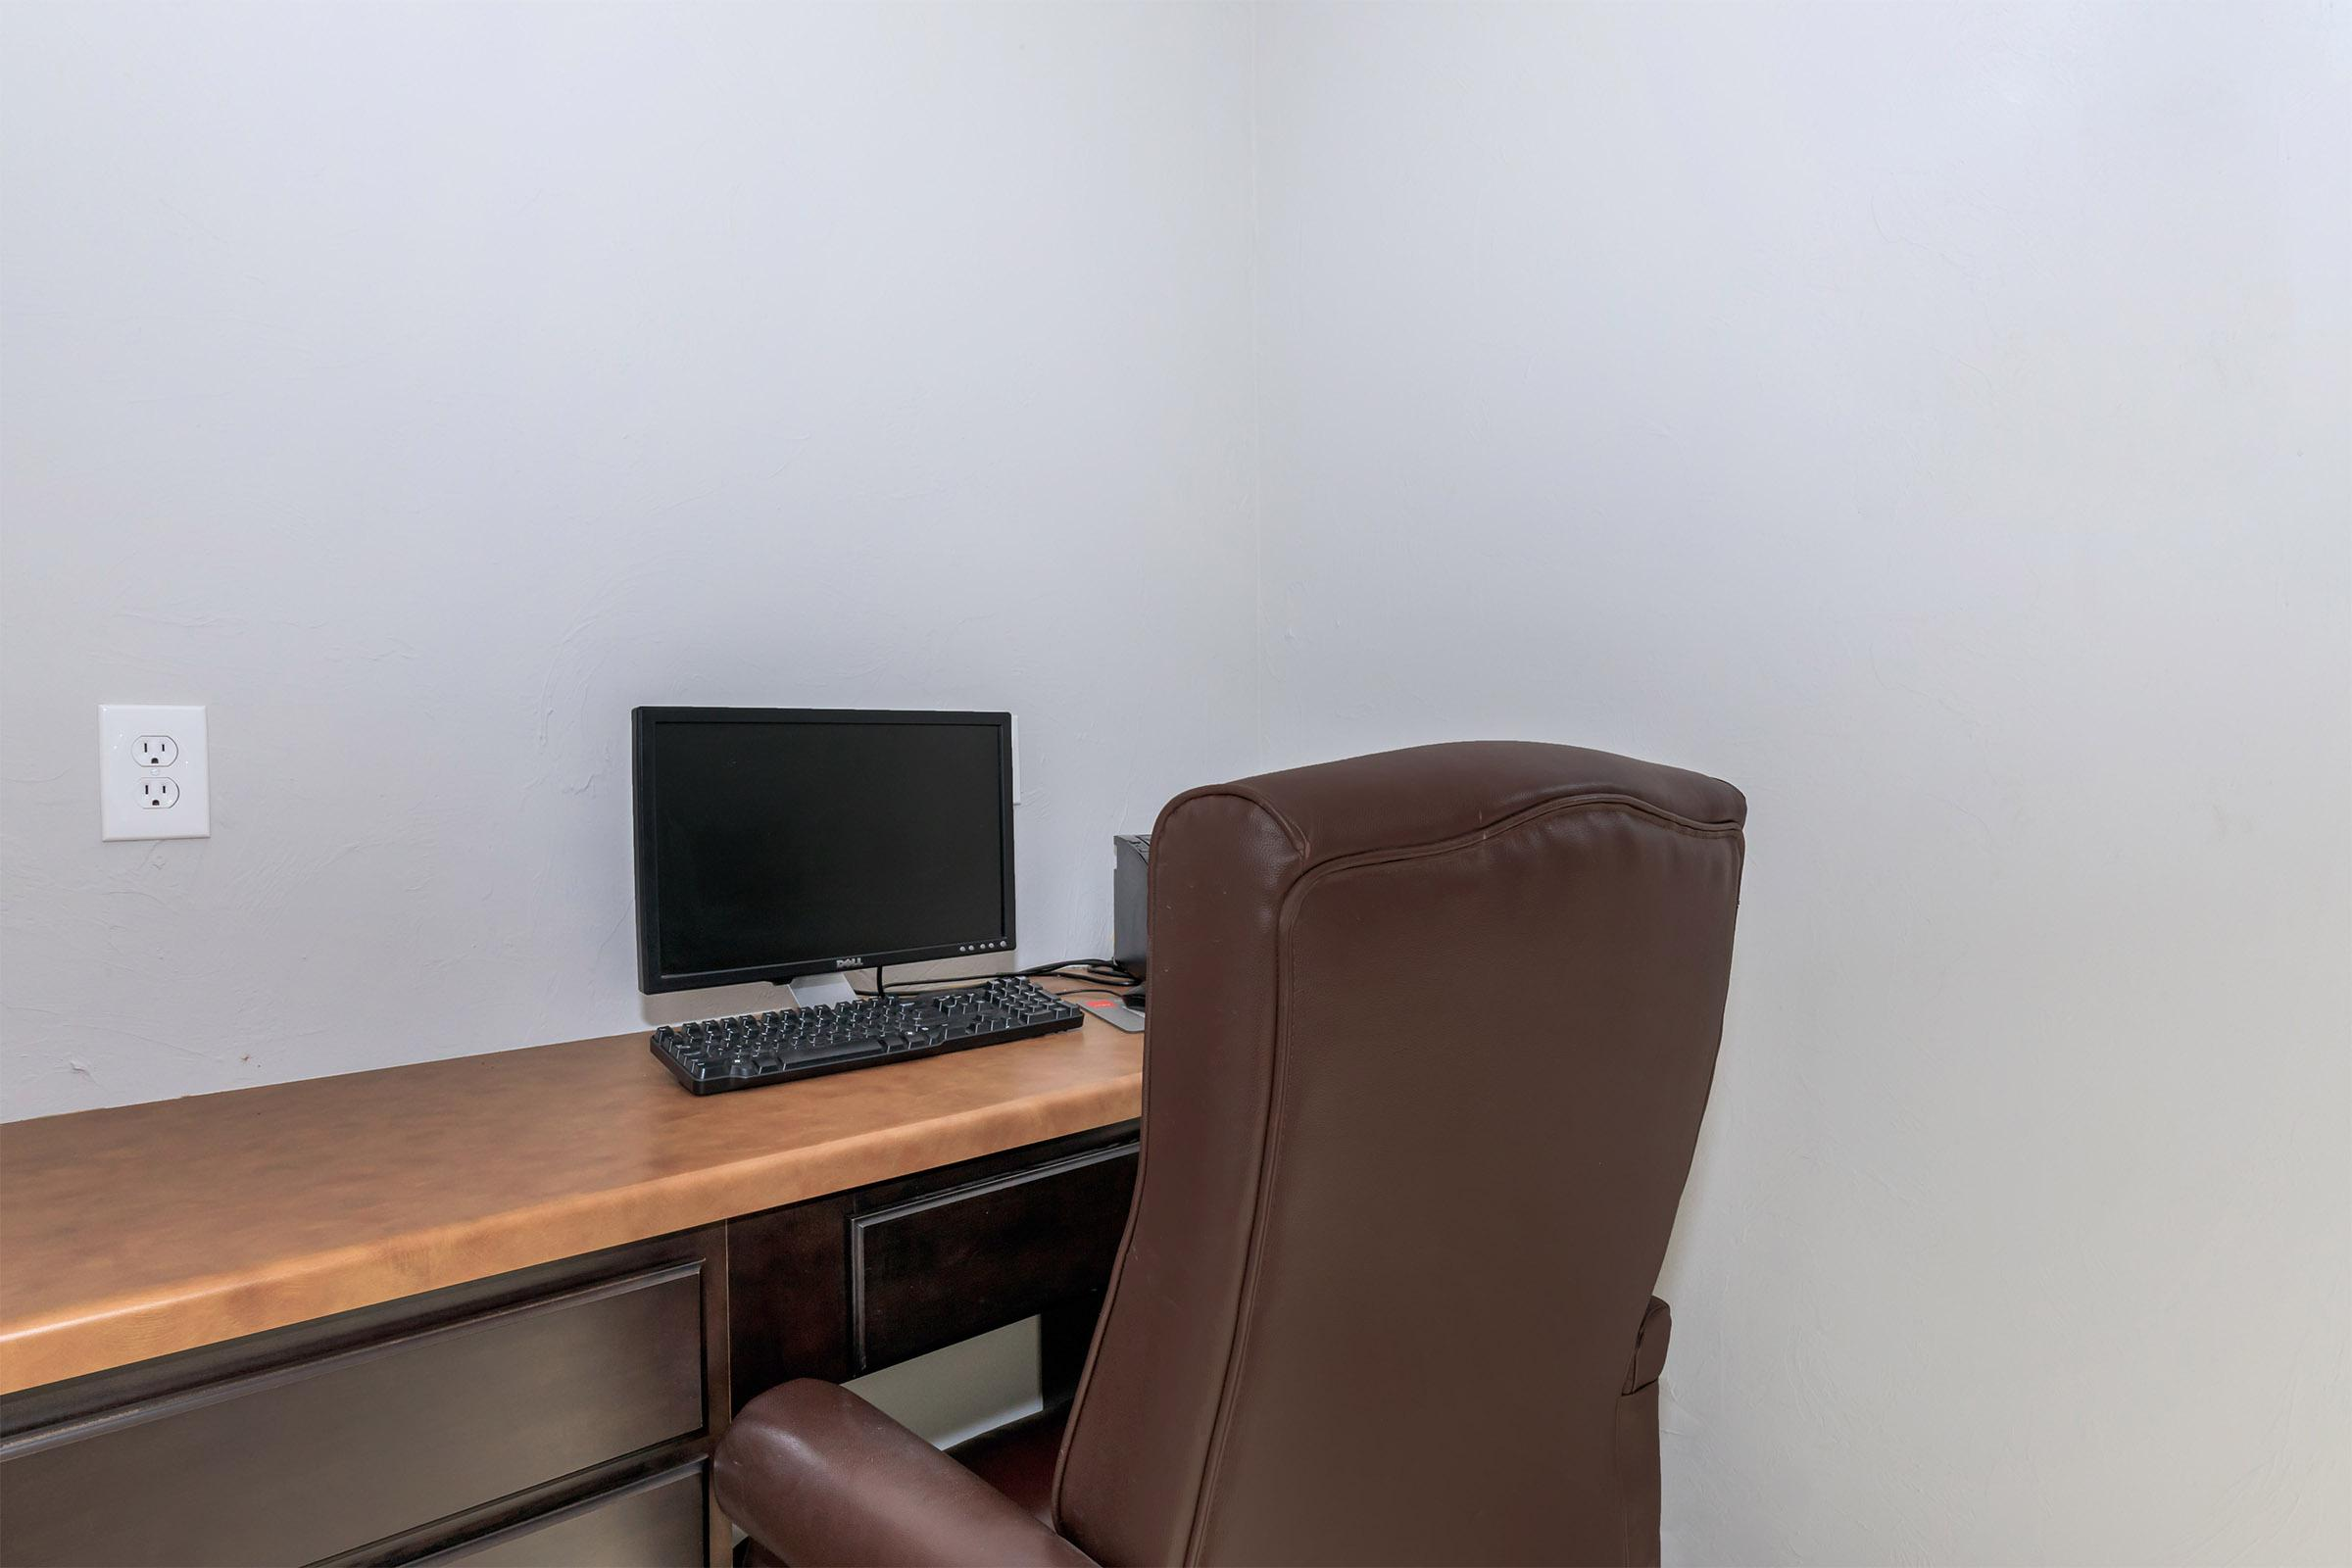 a brown leather chair in a room